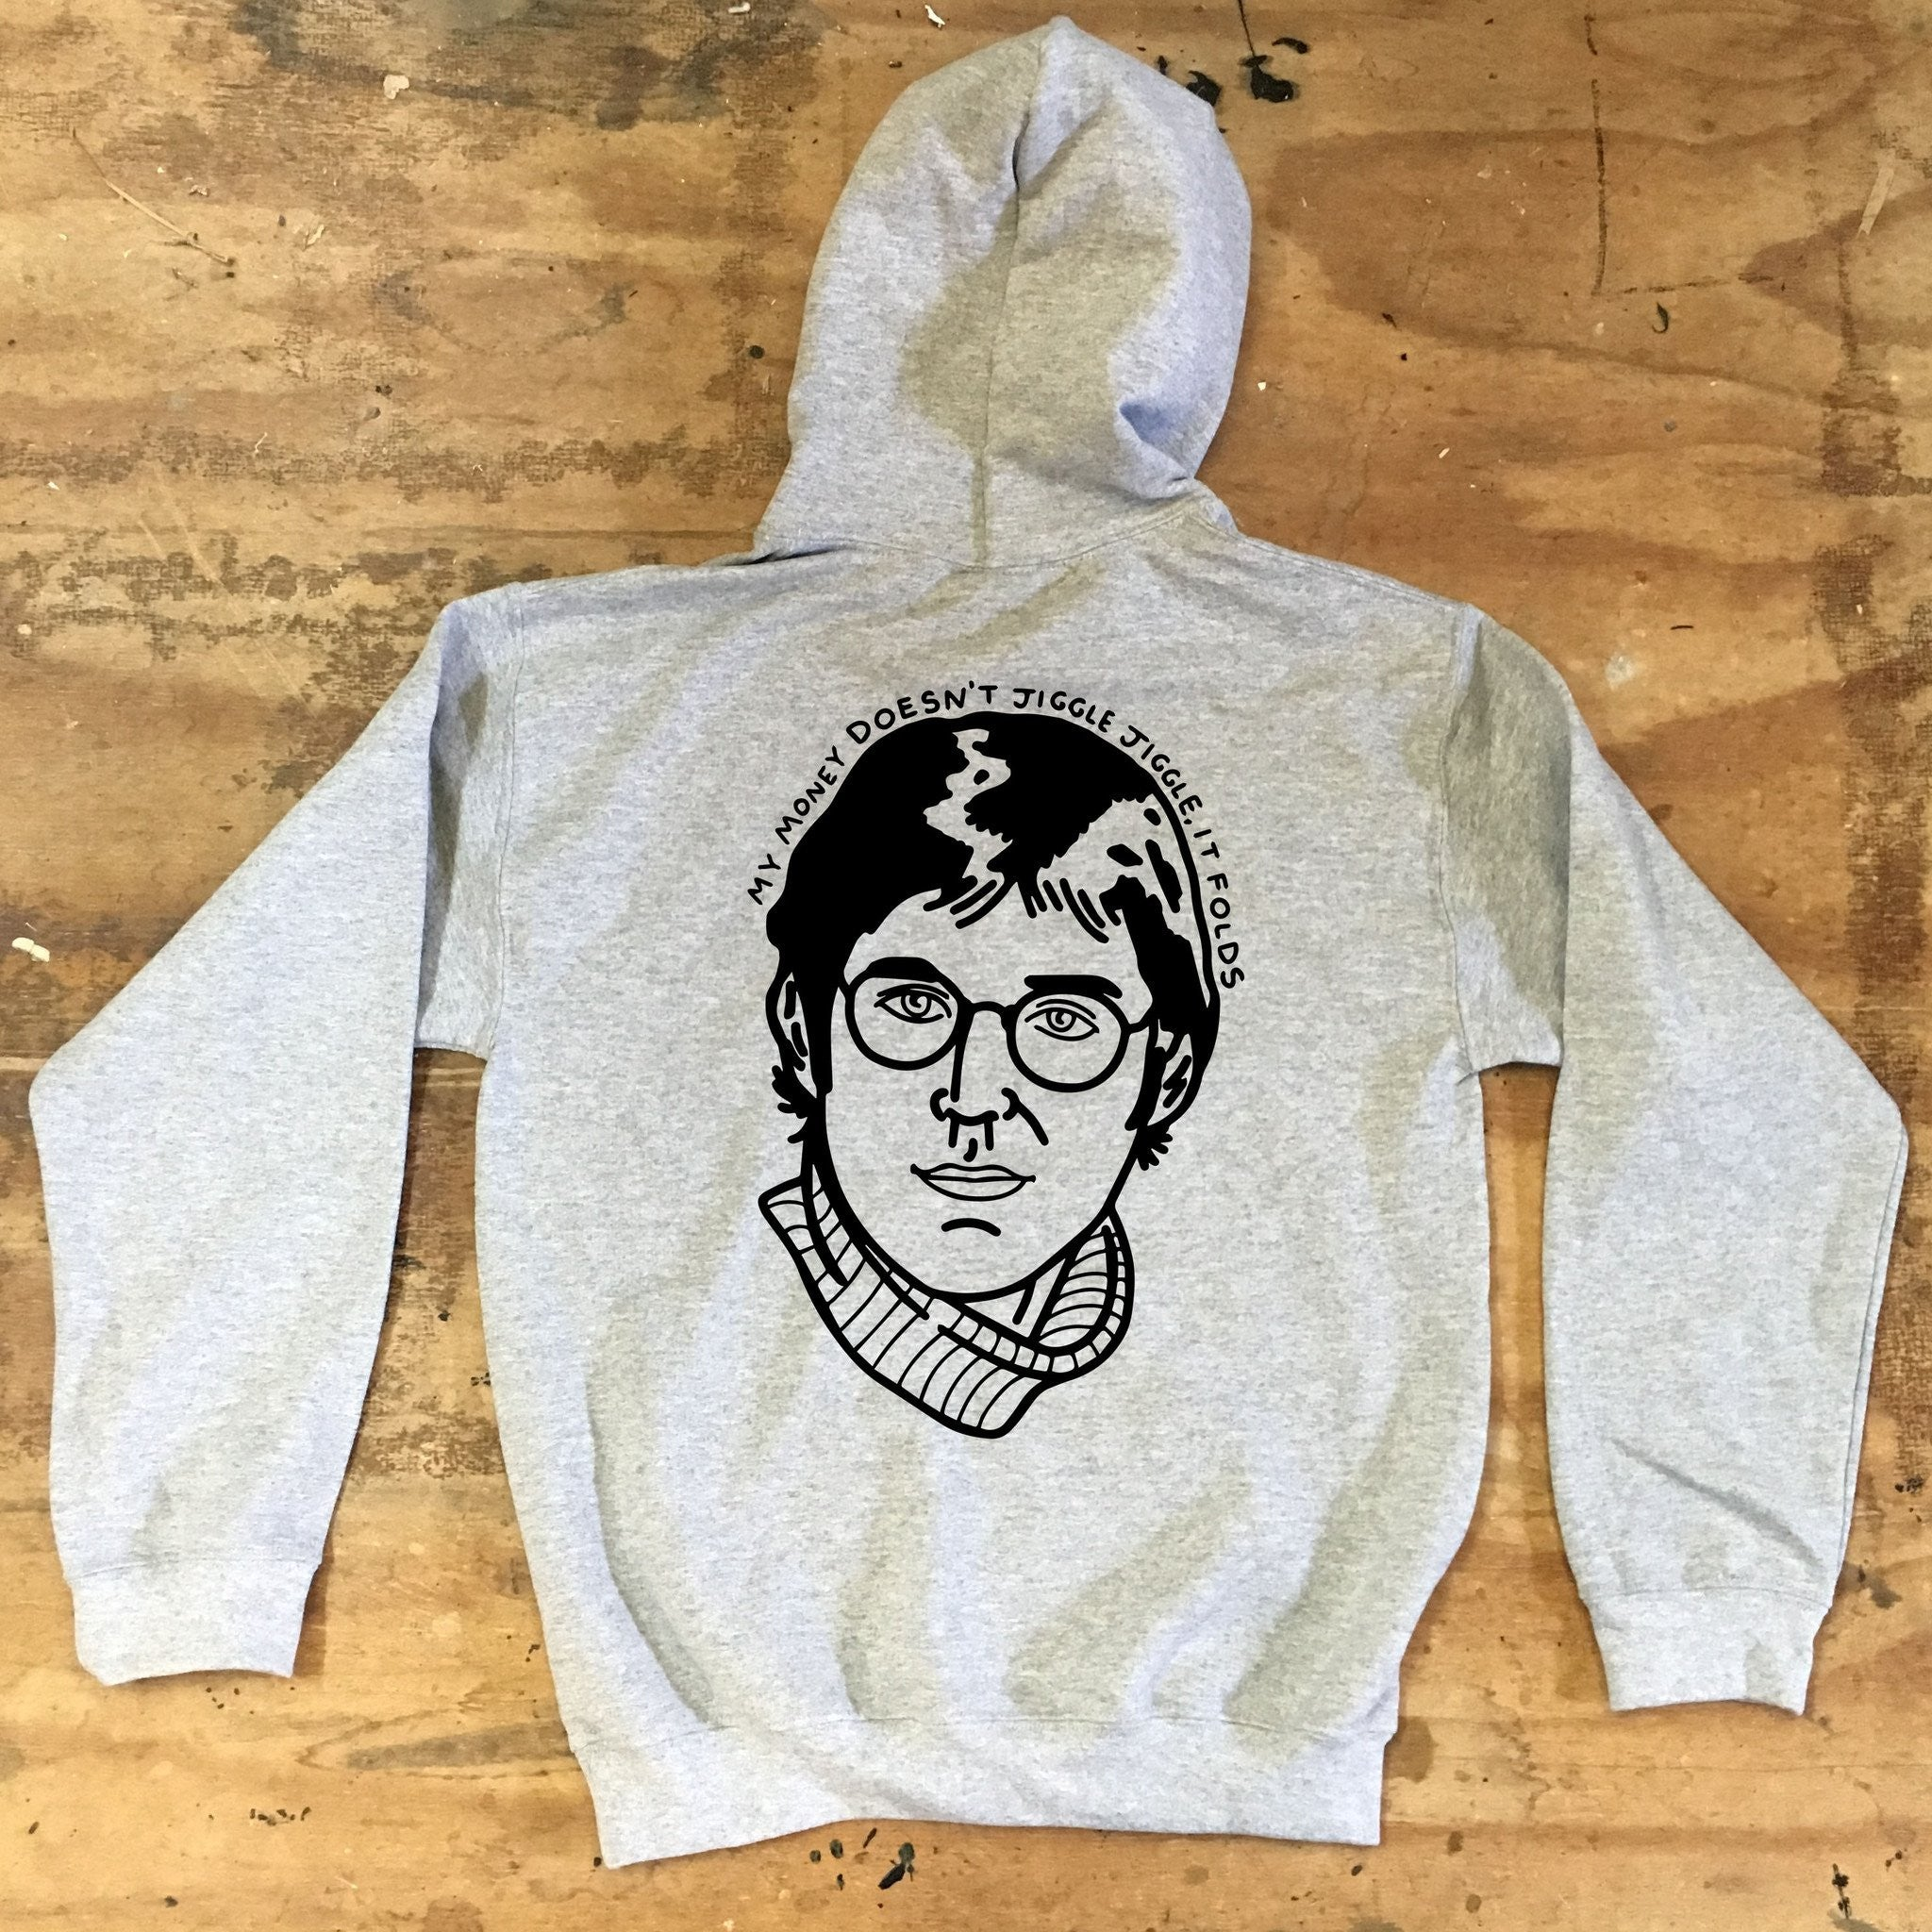 Louis Theroux - My Money Doesn't Jiggle - Hooded Top - Jiggle Apparel